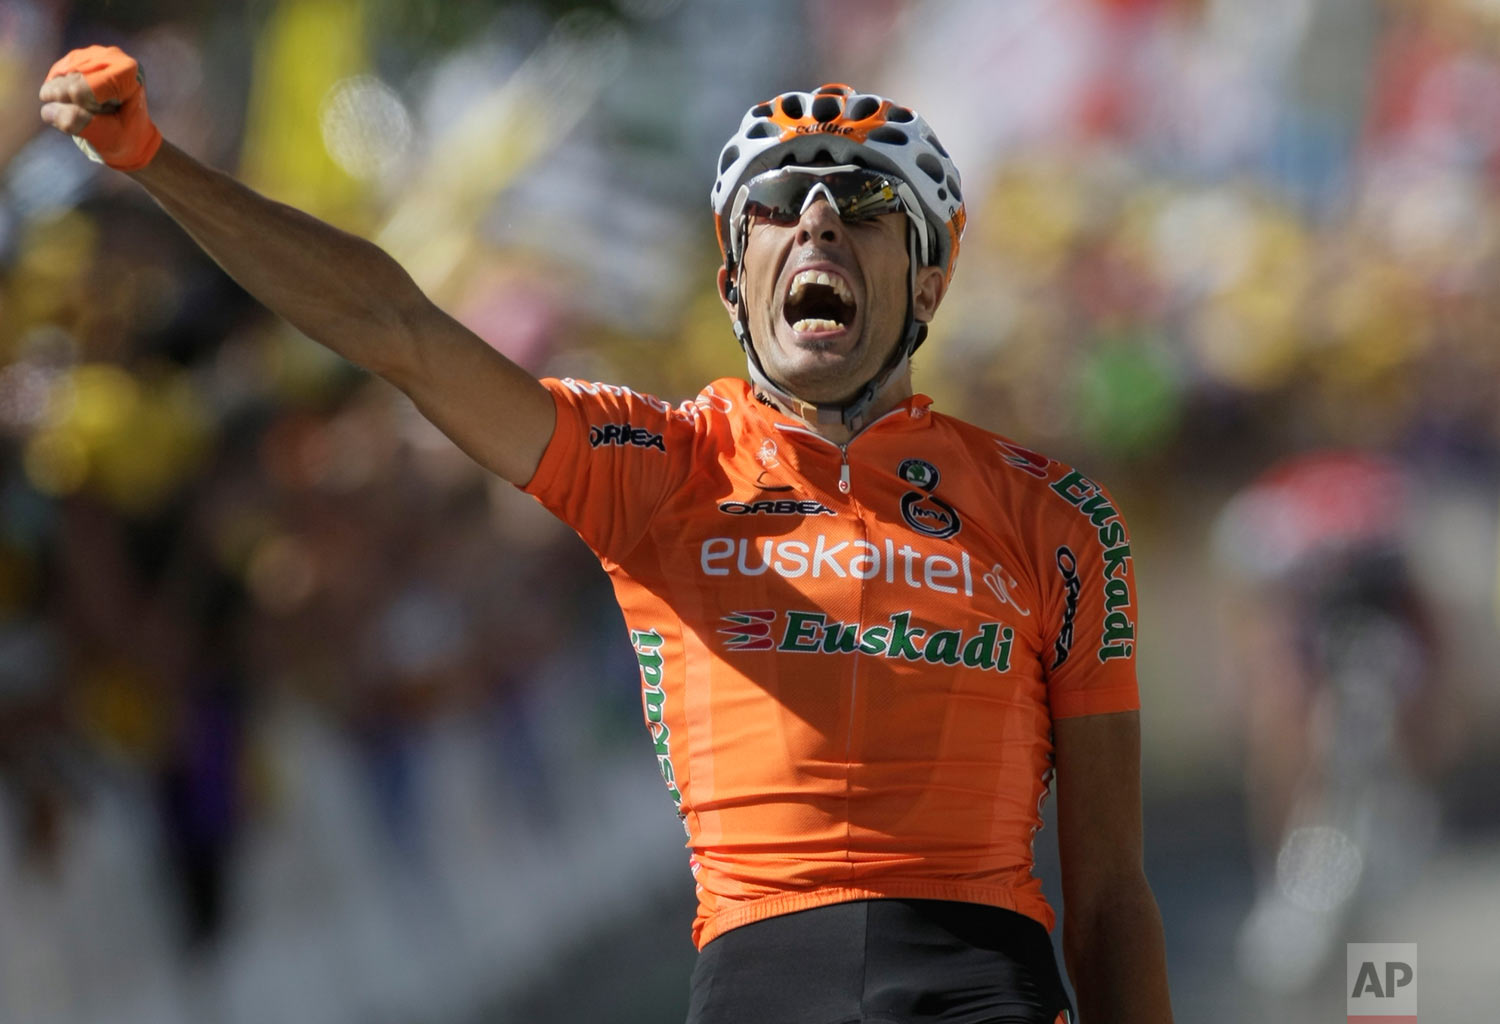 Mikel Astarloza of Spain reacts as he crosses the finish line to win the 16th stage of the Tour de France cycling race over 159 kilometers (98.8 miles) with start in Martigny, Switzerland and finish in Bourg-Saint-Maurice, Alps region, France, Tuesday July 21, 2009. (AP Photo/Laurent Rebours)